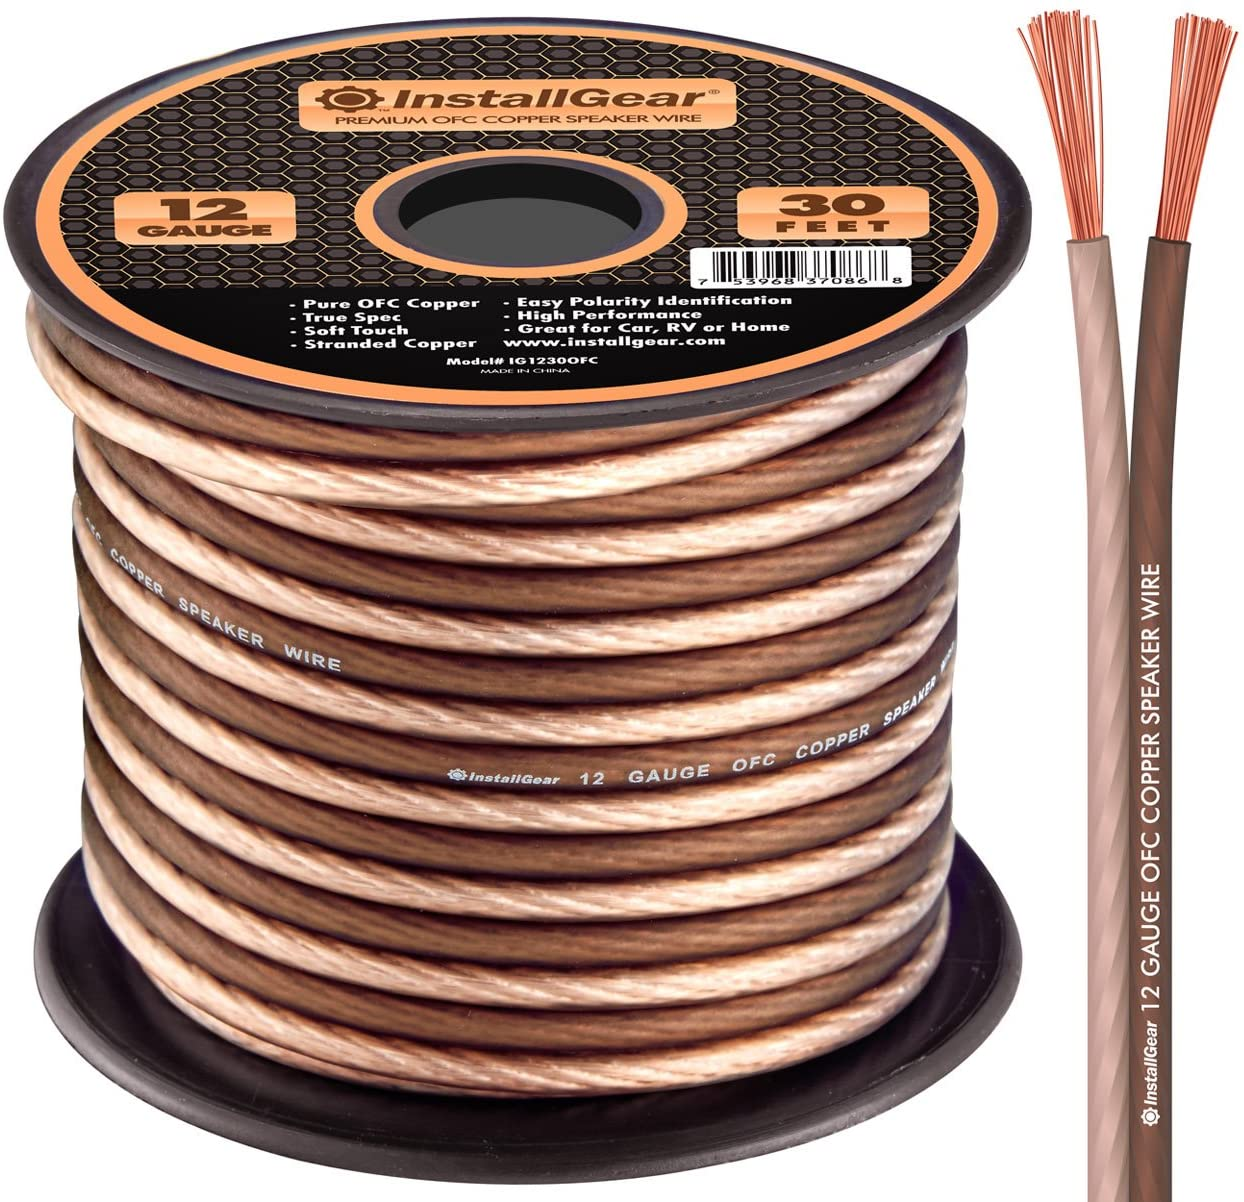 InstallGear 10 Gauge Speaker Wire - 10.10% Oxygen-Free Copper - True Spec  and Soft Touch Cable (10-feet)